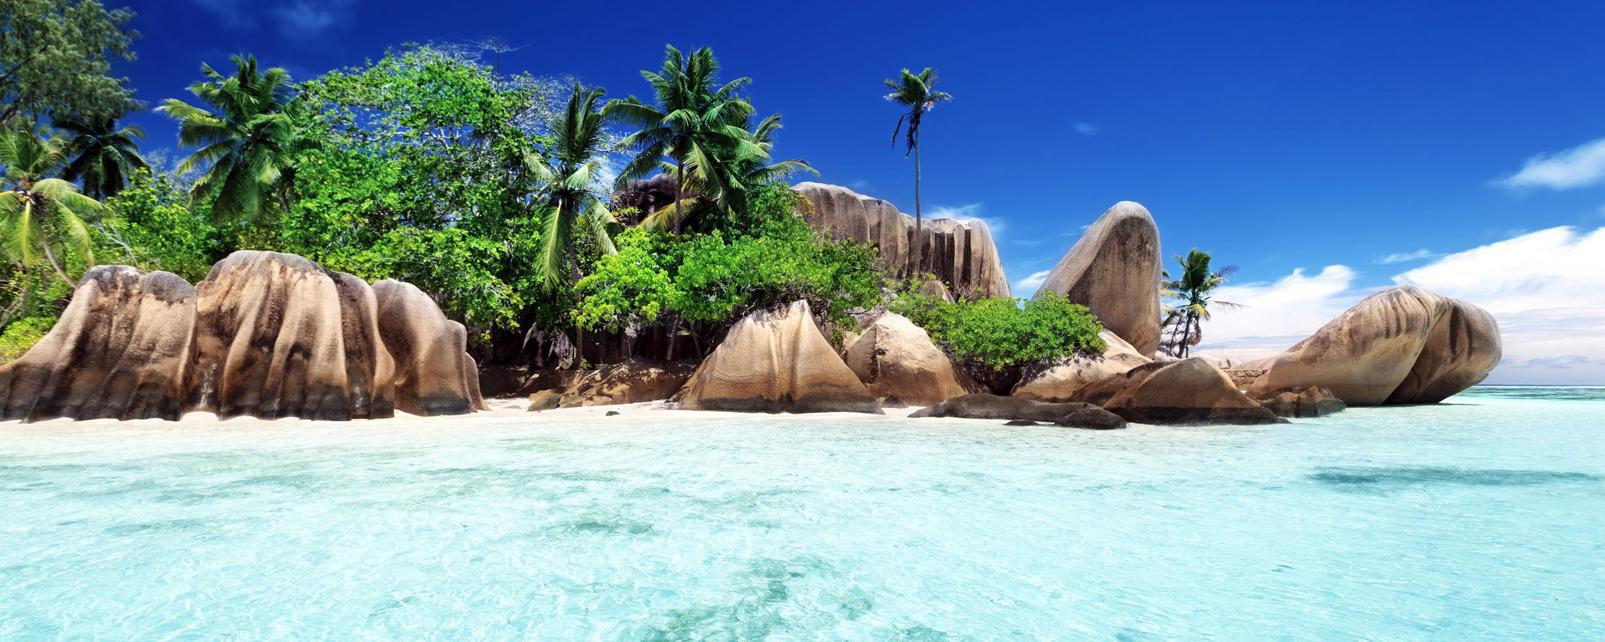 weather forecast la digue seychelles best time to go easyvoyage